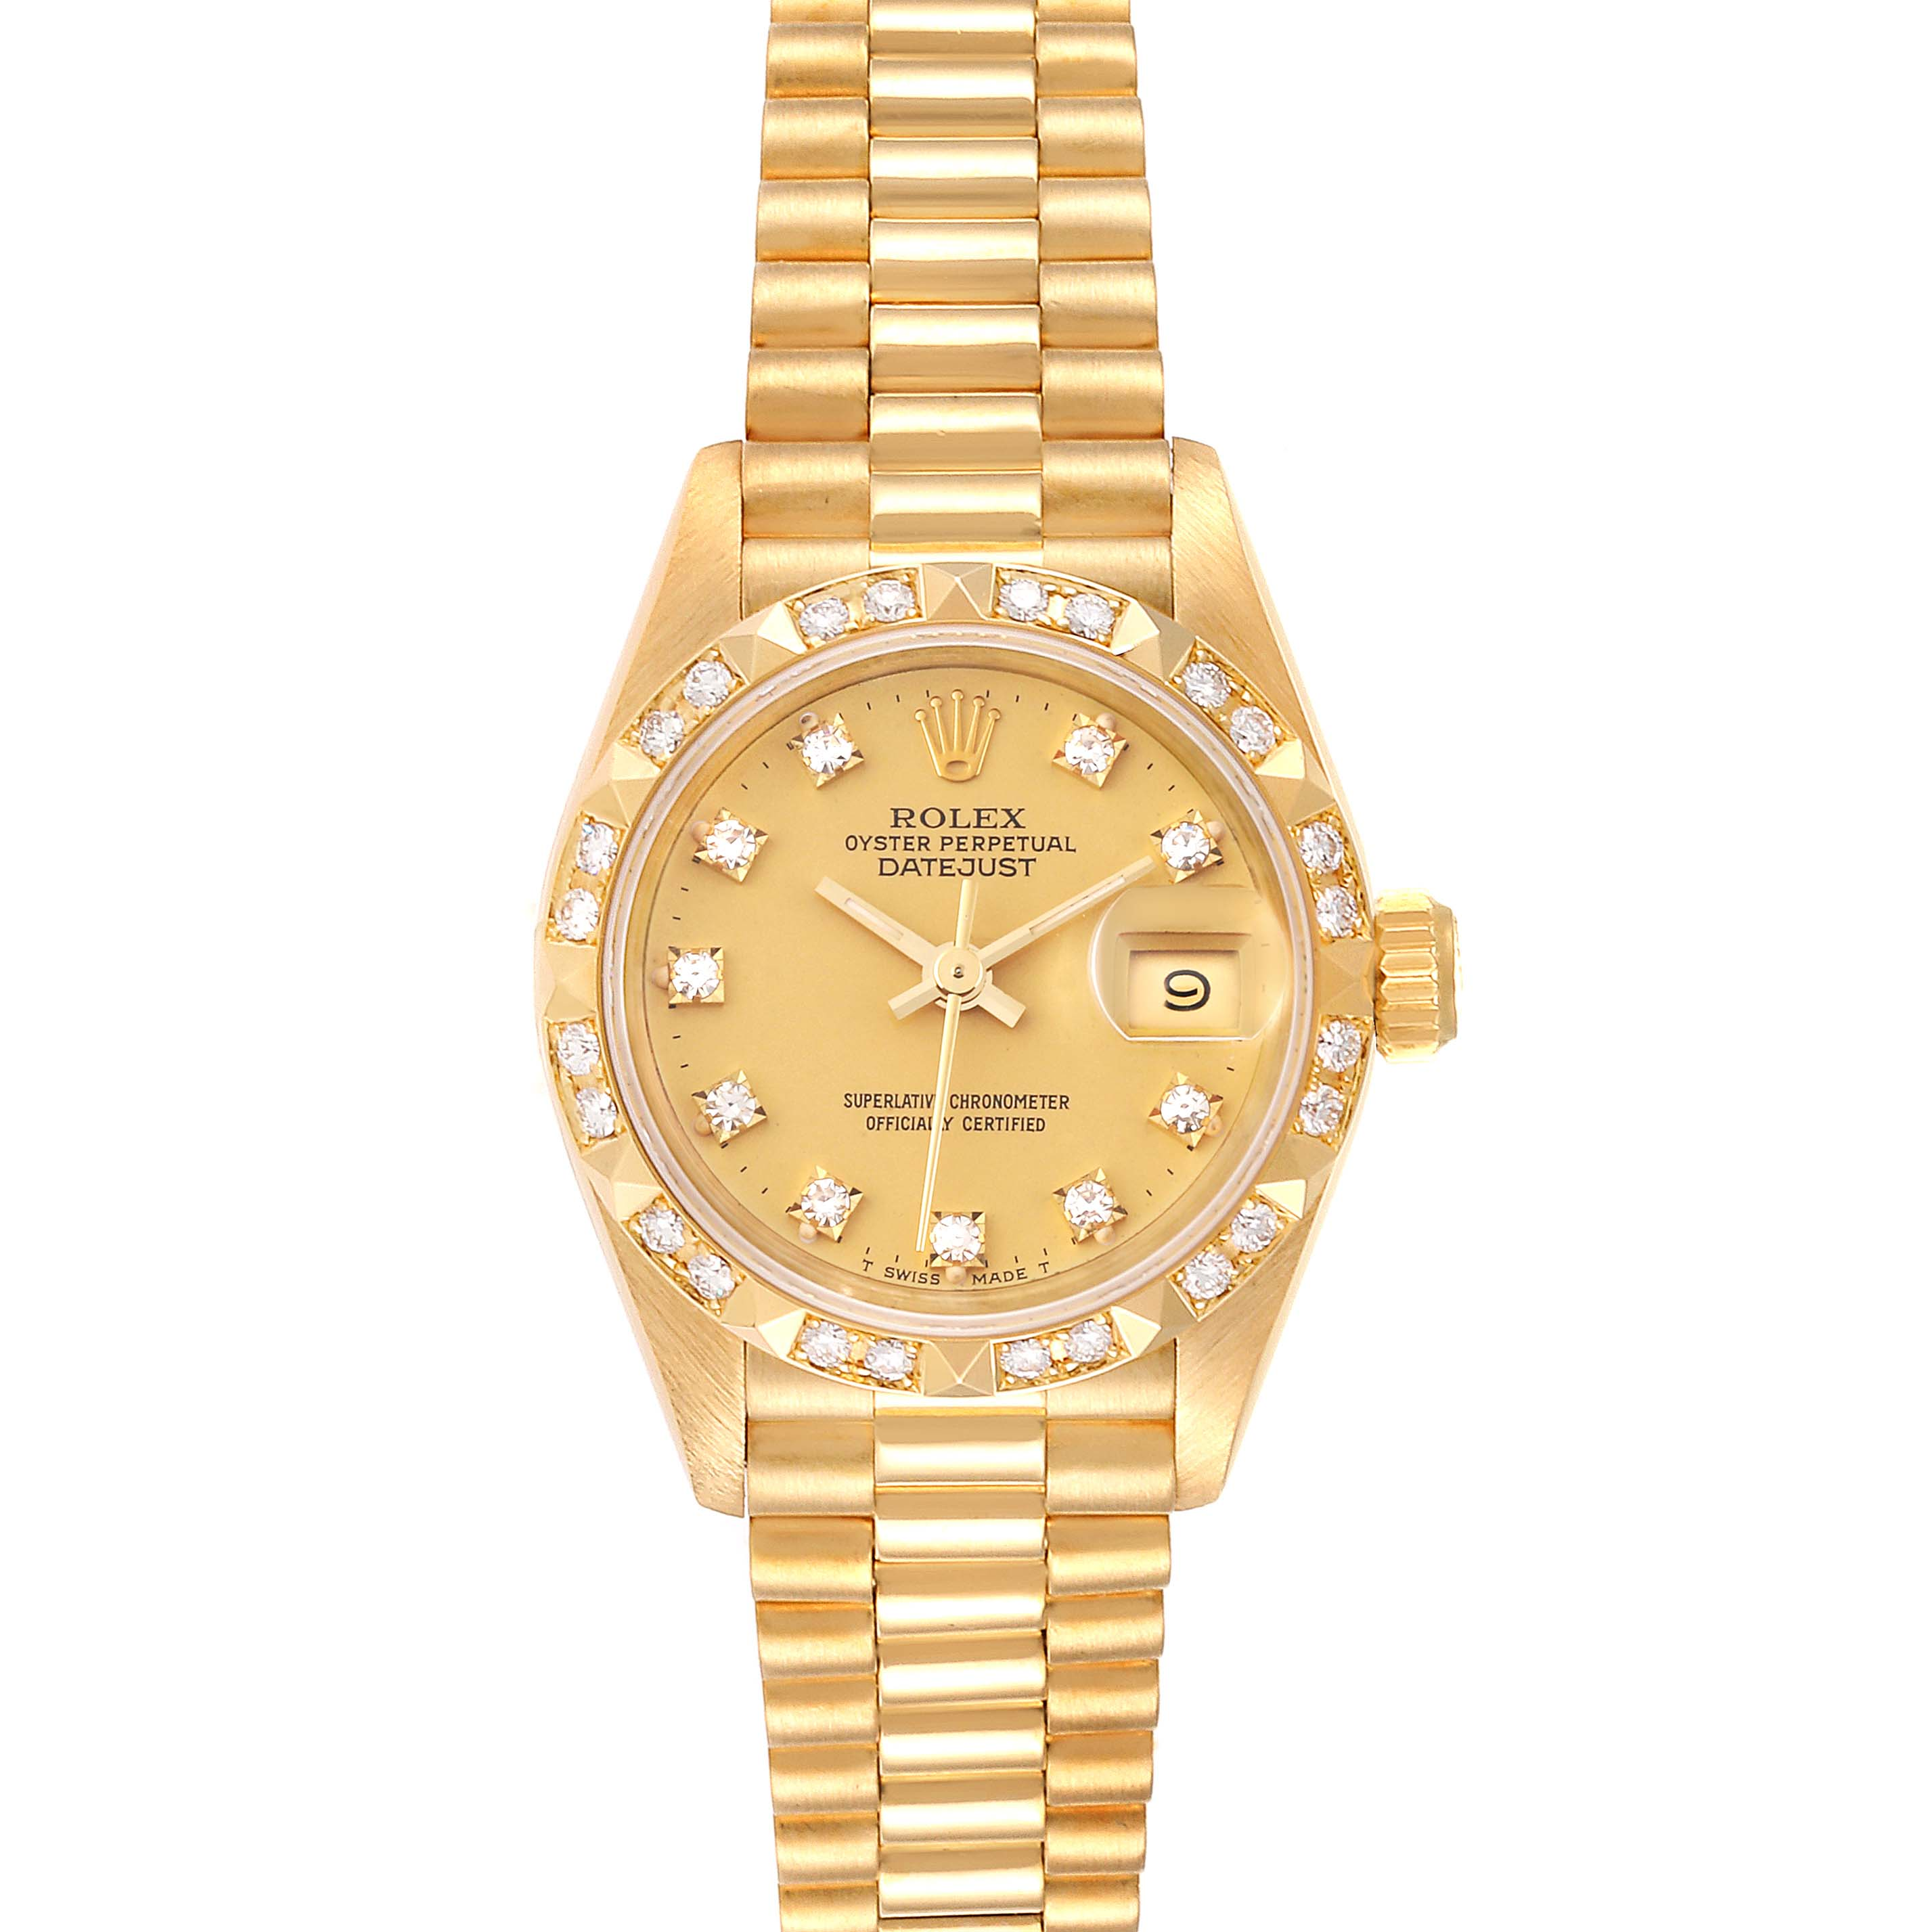 Rolex President Datejust Yellow Gold Pyramid Diamond Bezel Watch 69258